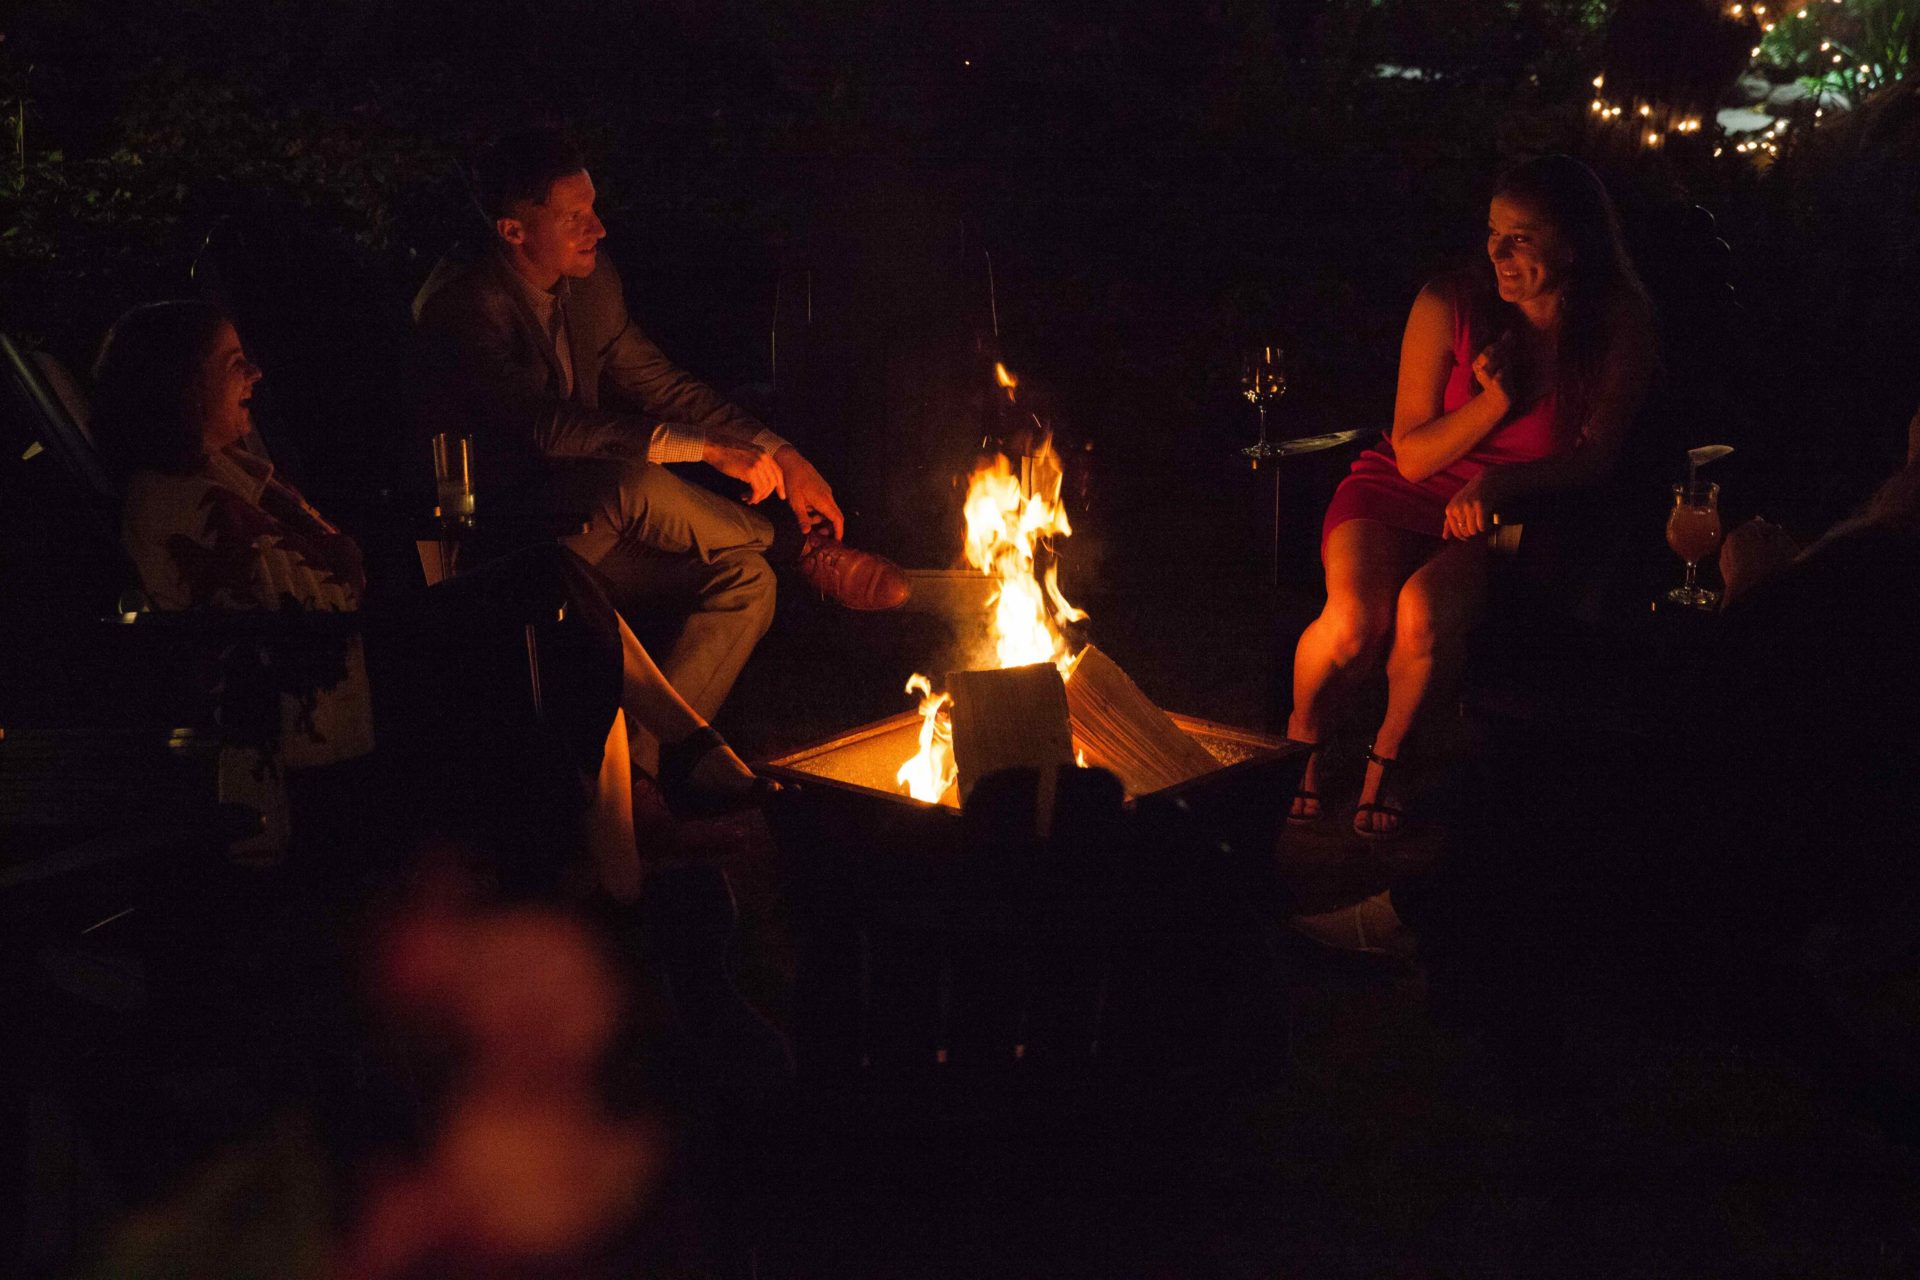 Campfire on the grounds of the historic Maccallum House Inn.